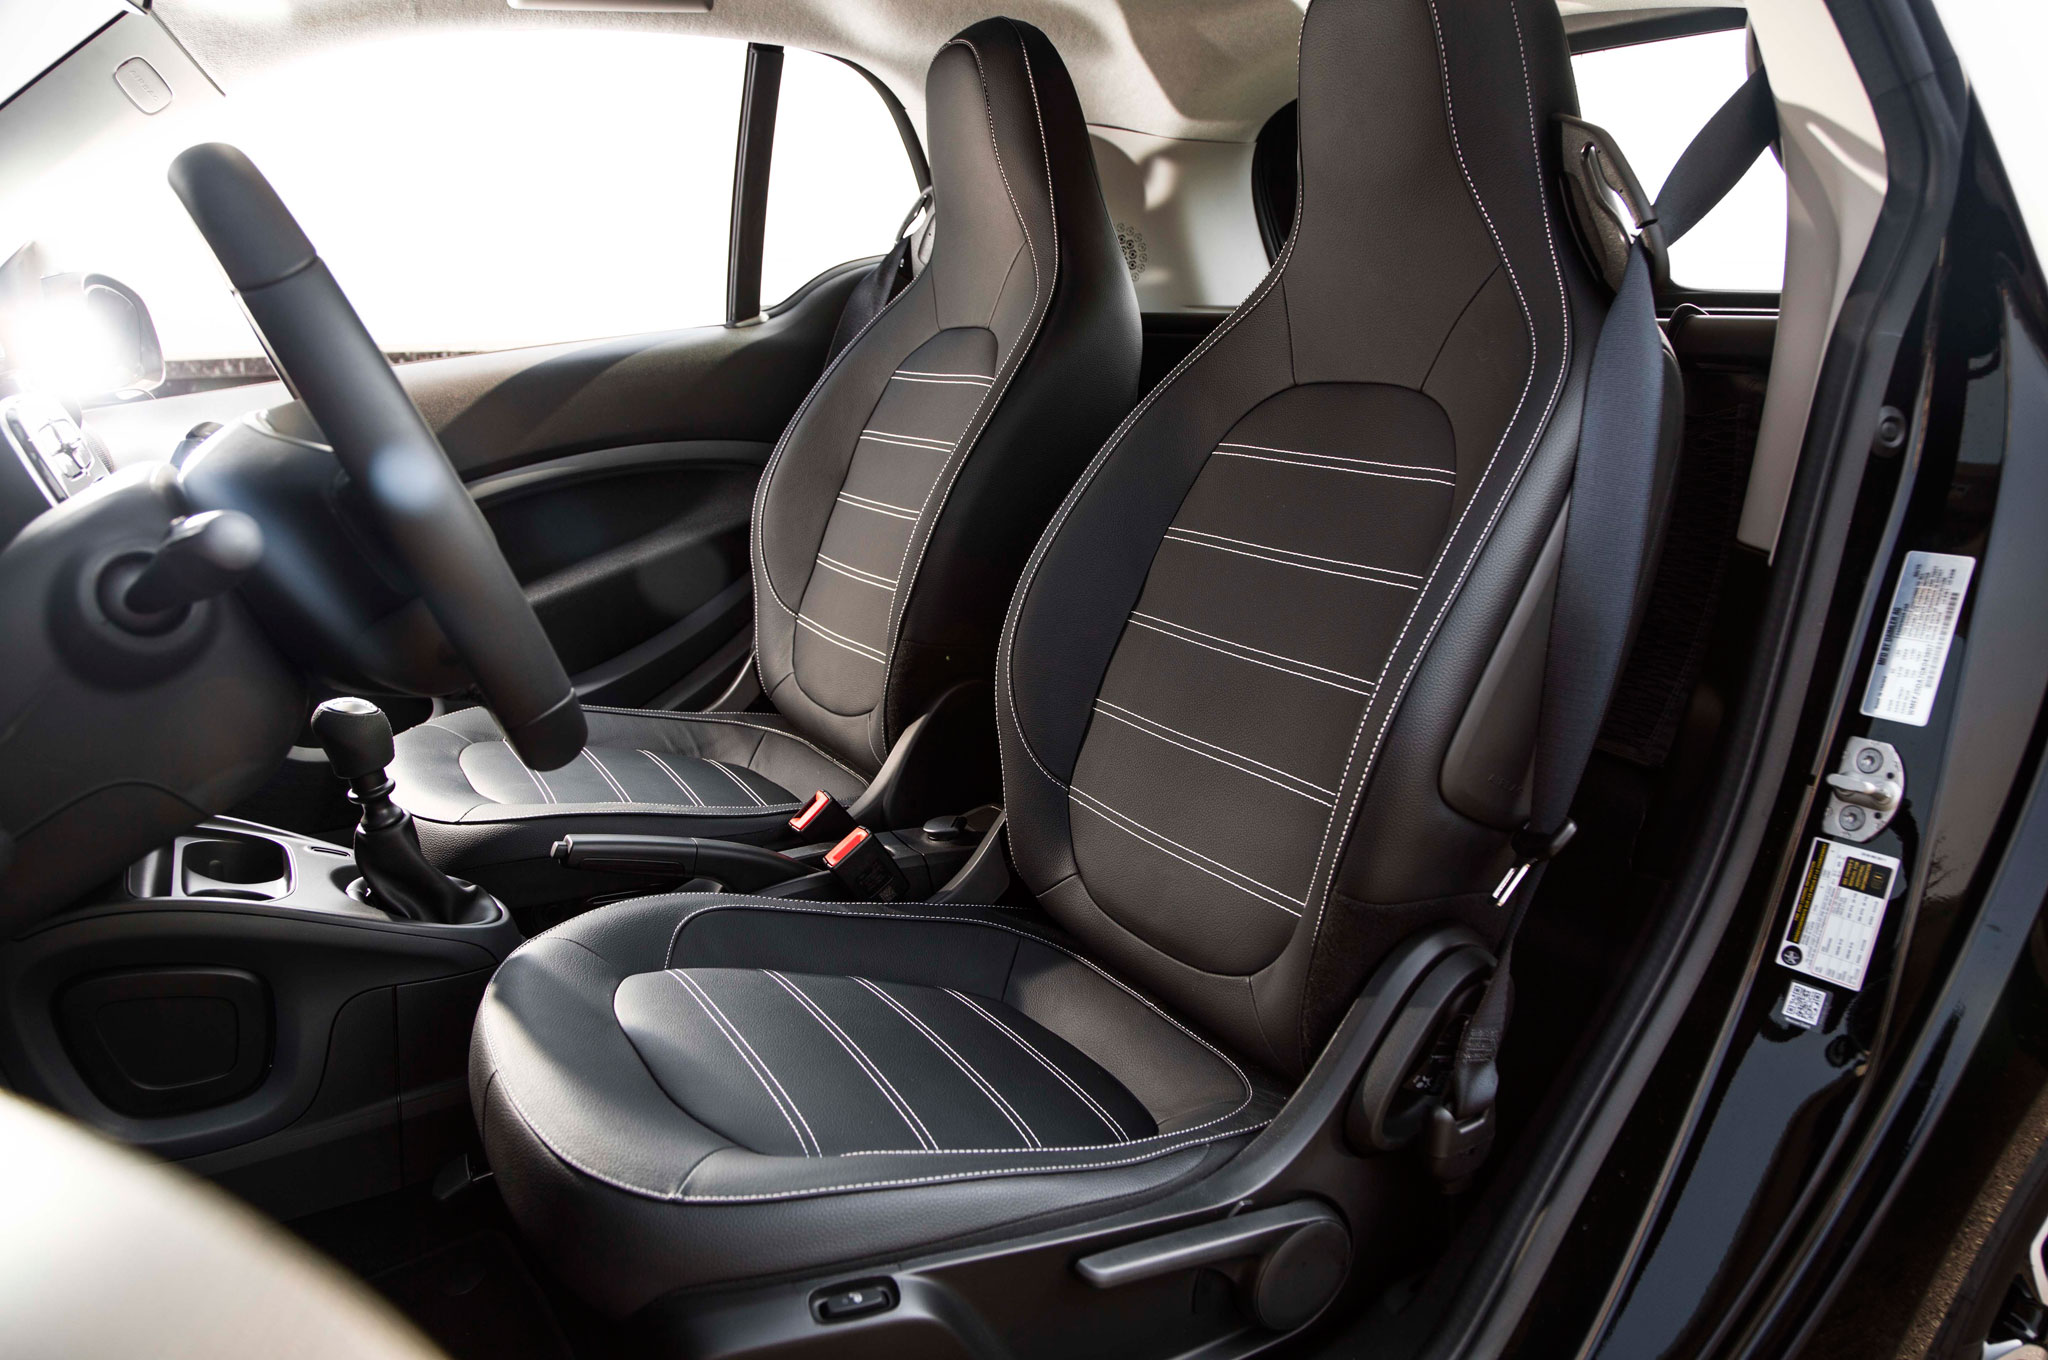 2016 Smart Fortwo Seats Interior (Photo 8 of 17)